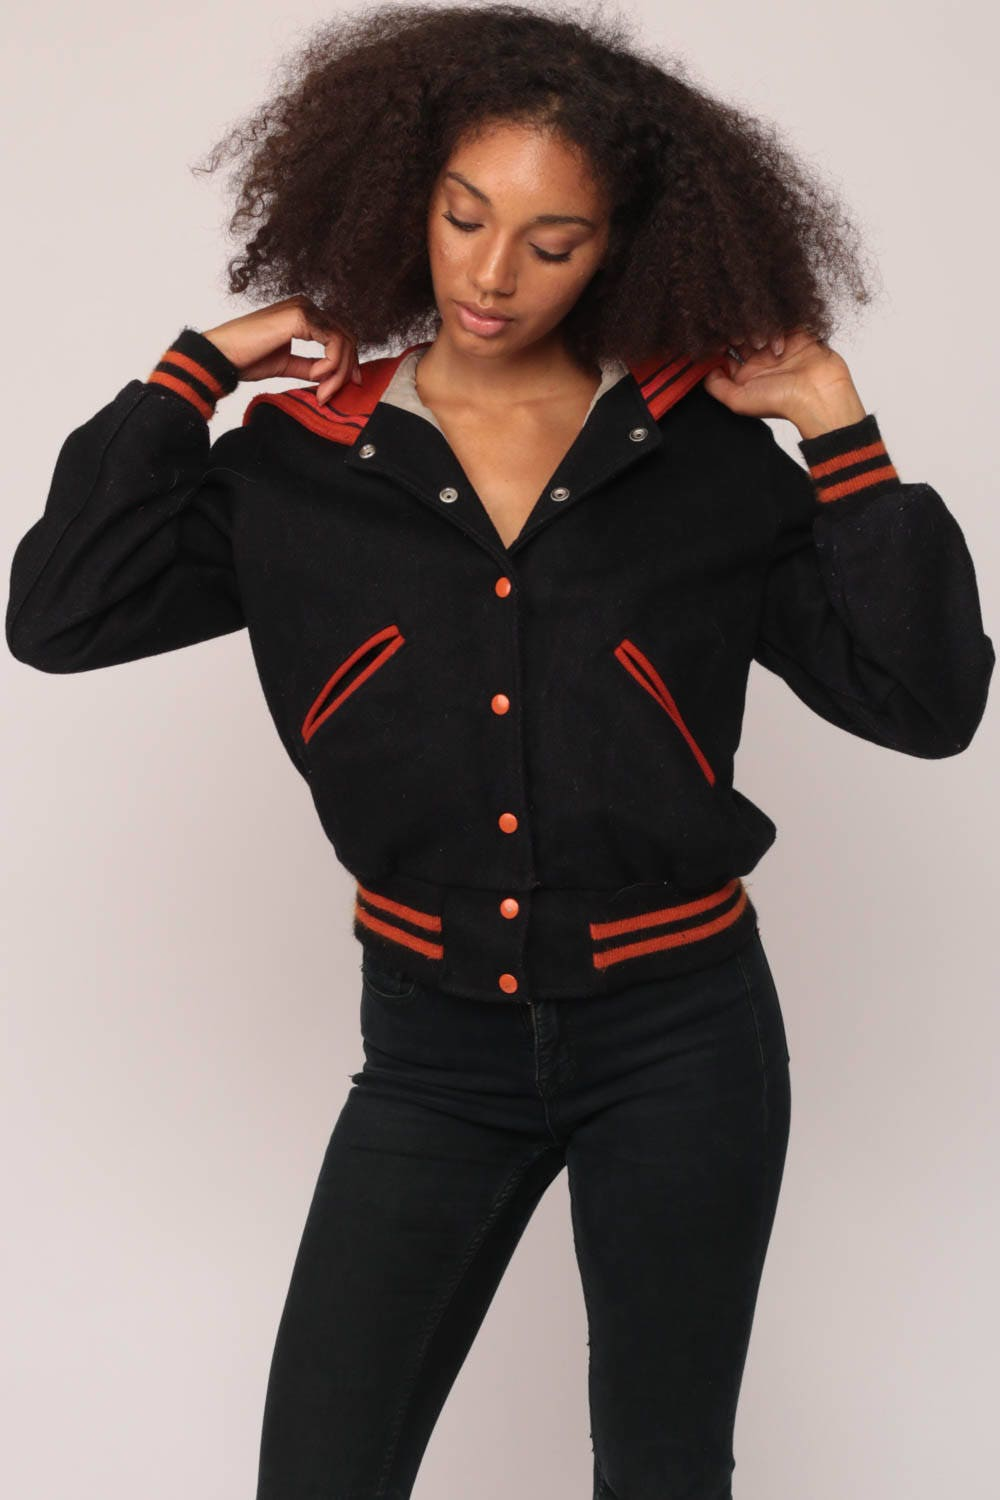 Varsity Jacket Wool 70s Black Letterman Sailor Marching Pants For Sales And Promotions Follow Us Here Instagram Shopexile Facebookcom